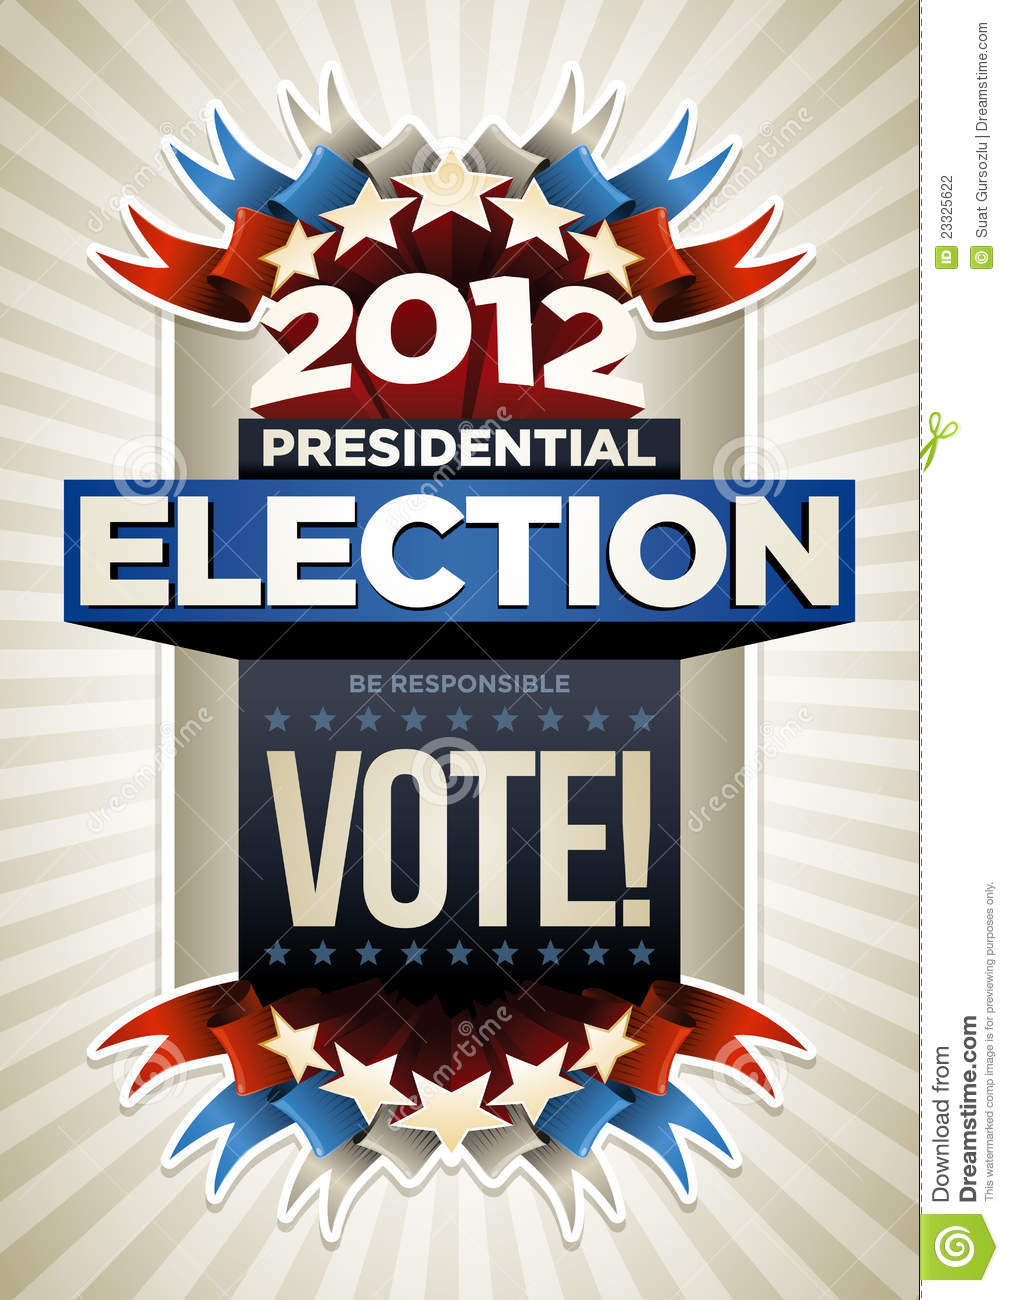 online essay contest 2012 presidential election